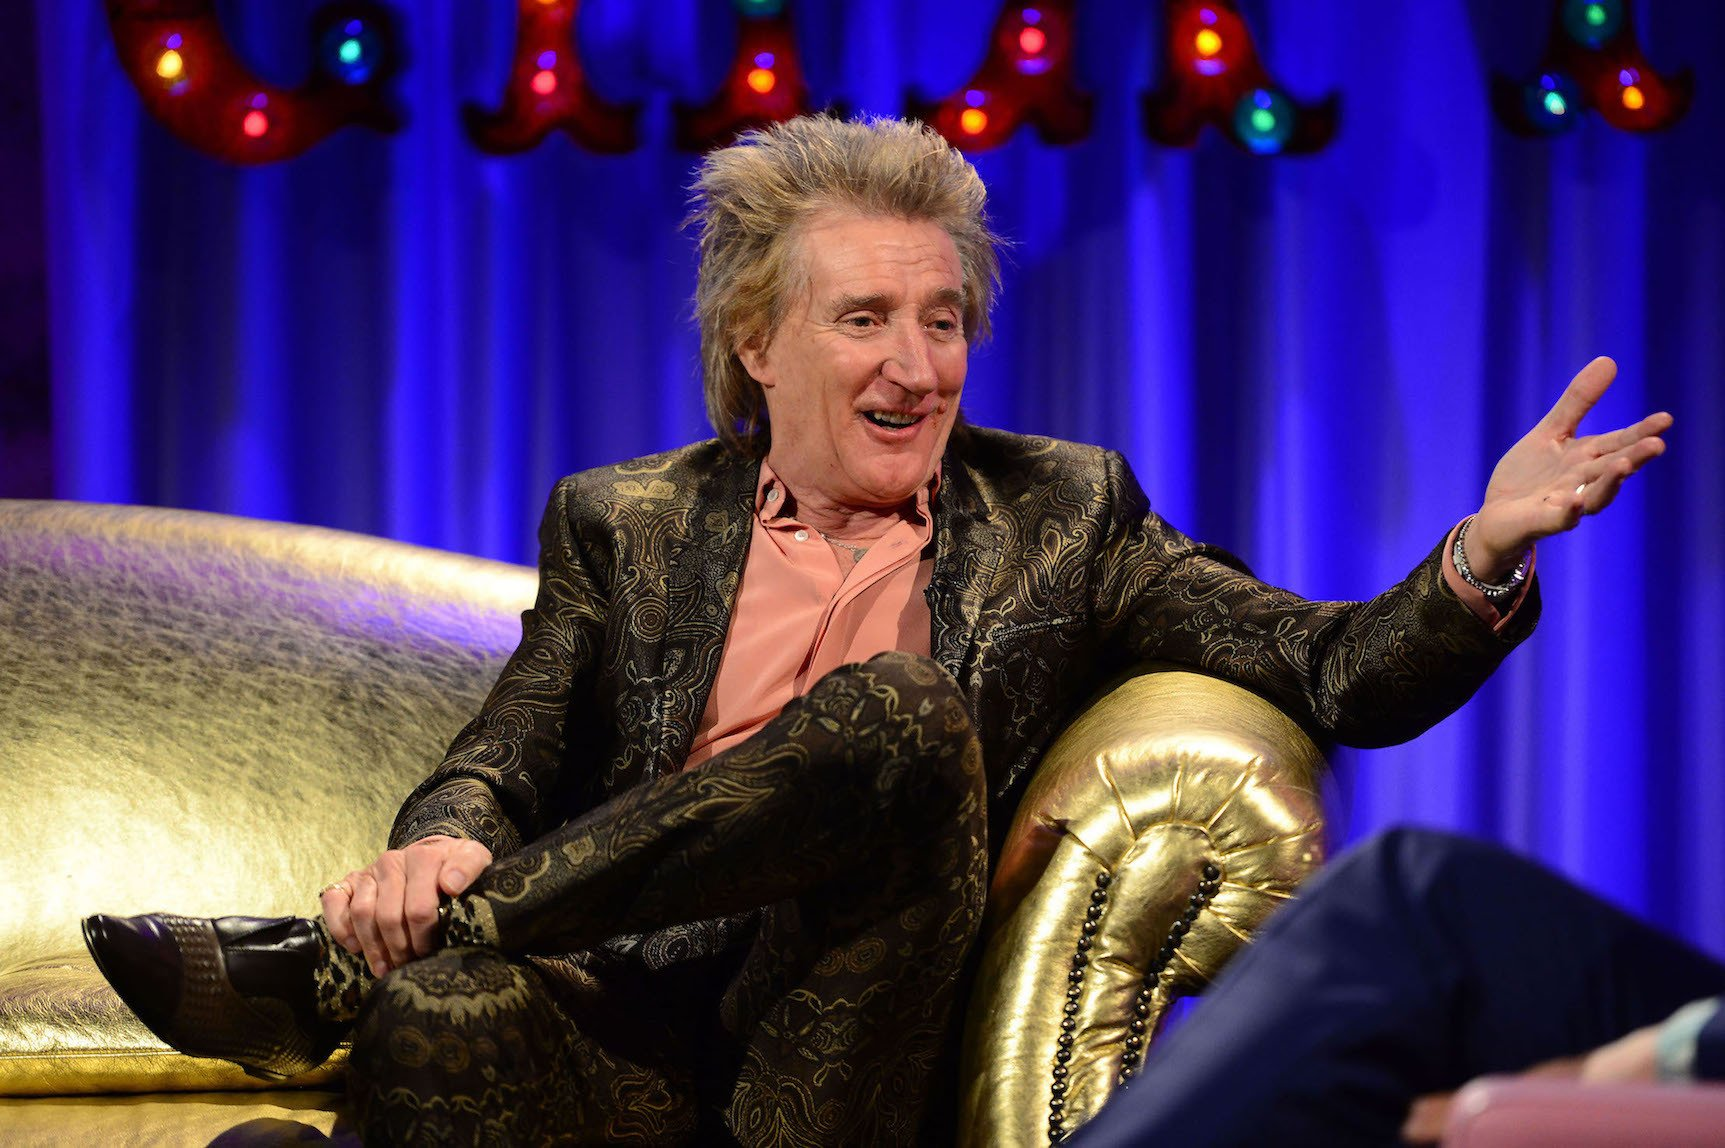 Channel 4 undated handout photo of Rod Stewart as he appears on Alan Carr Chatty Man to be transmitted this evening. PRESS ASSOCIATION Photo. Issue date: Tuesday March 8, 2016. See PA story SHOWBIZ Stewart. Photo credit should read: Channel 4/PA Wire NOTE TO EDITORS: This handout photo may only be used in for editorial reporting purposes for the contemporaneous illustration of events, things or the people in the image or facts mentioned in the caption. Reuse of the picture may require further permission from the copyright holder.